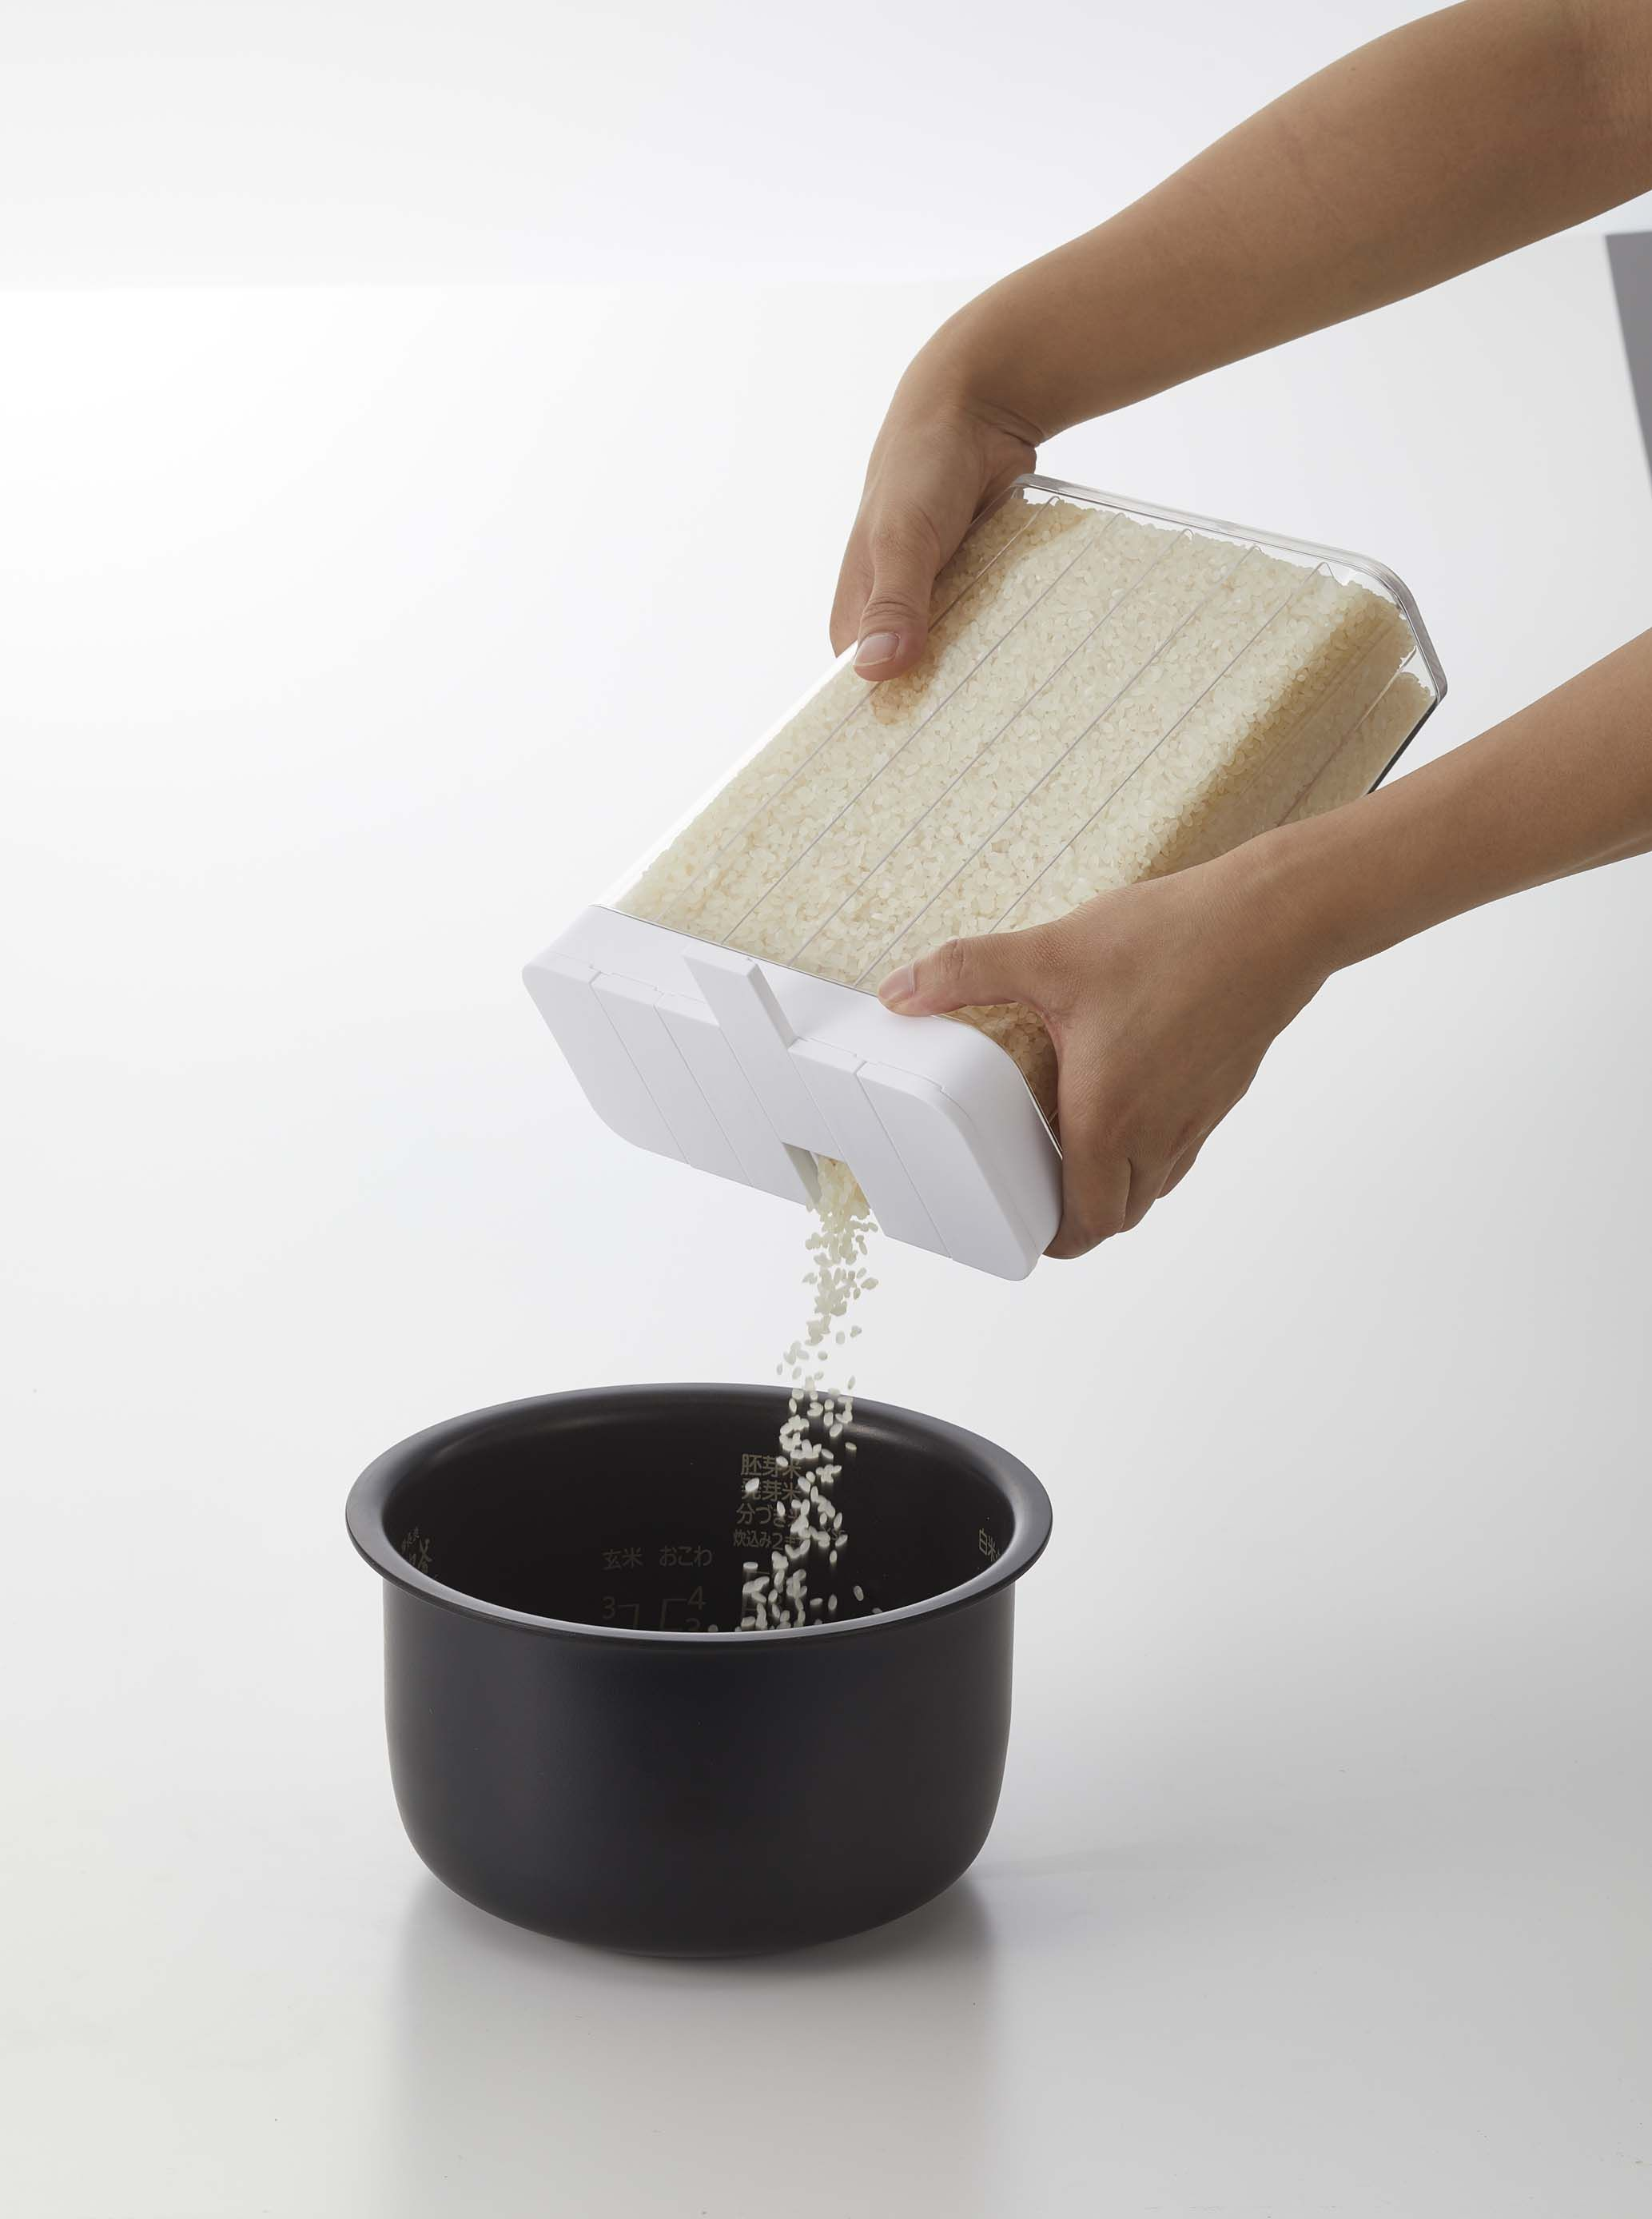 This grain storage container takes the prep out of meal prep. No more measuring guesswork when cooking rice: this container makes it easy to portion-control, measure out specific numbers of servings, and achieve the same result time and again.